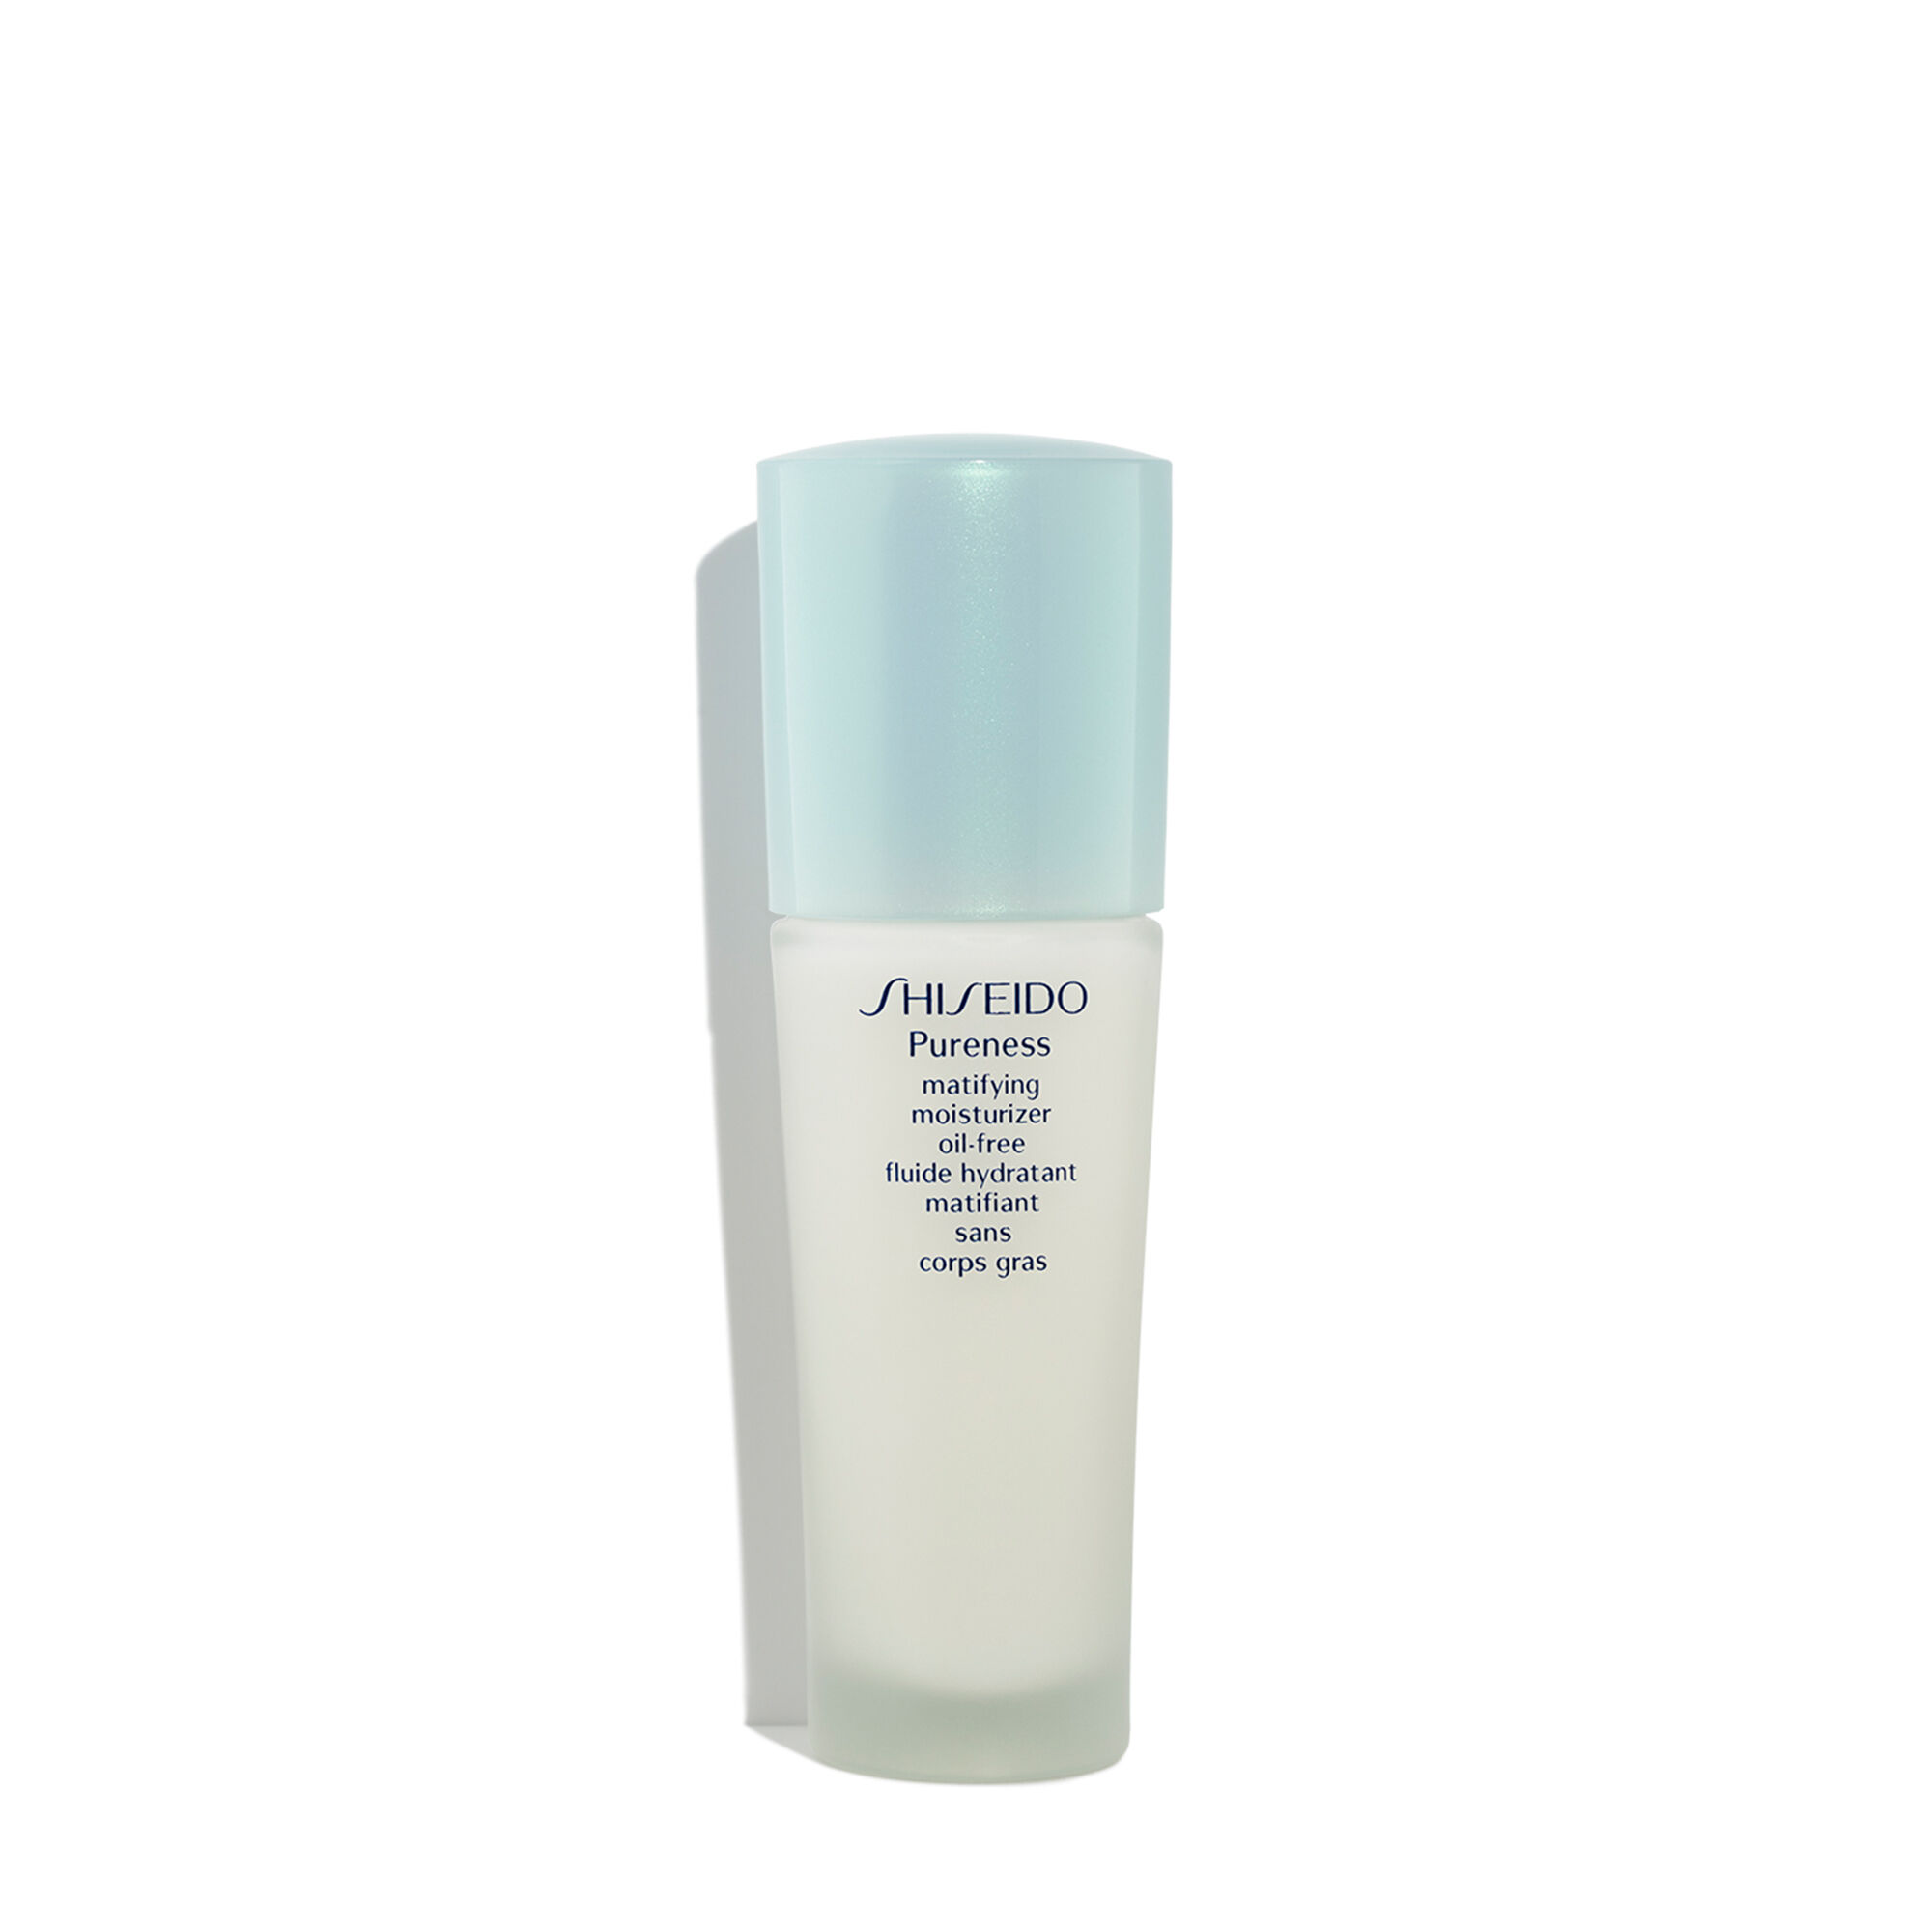 Shiseido - Pureness Matifying Moisturizer Oil-Free -50ml/1.7oz Electric Mini Portable Rechargeable Rotary Washing Pore Cleansing Device